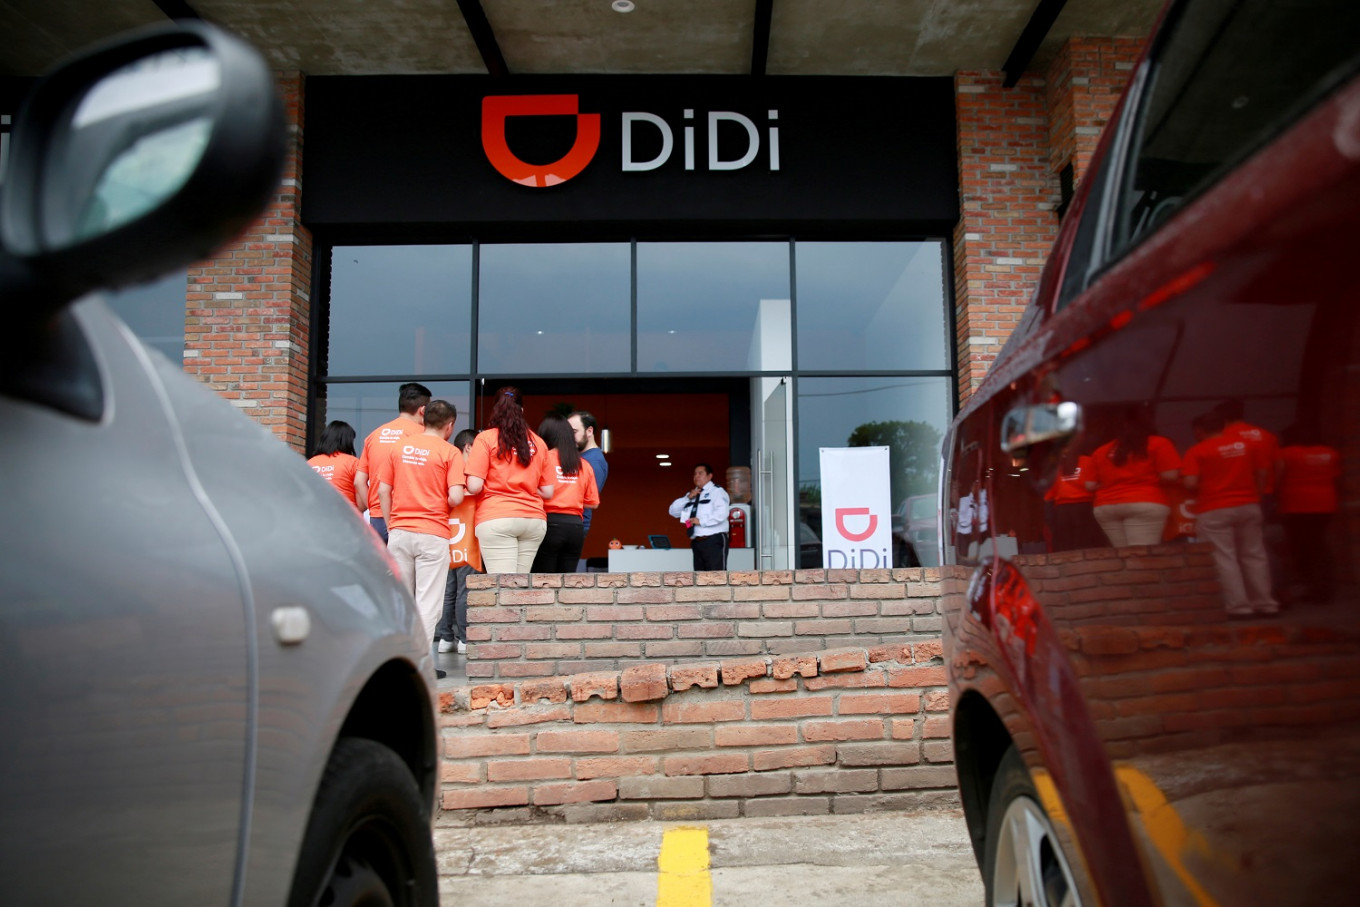 Didi launches service in Mexico for women to select only female passengers